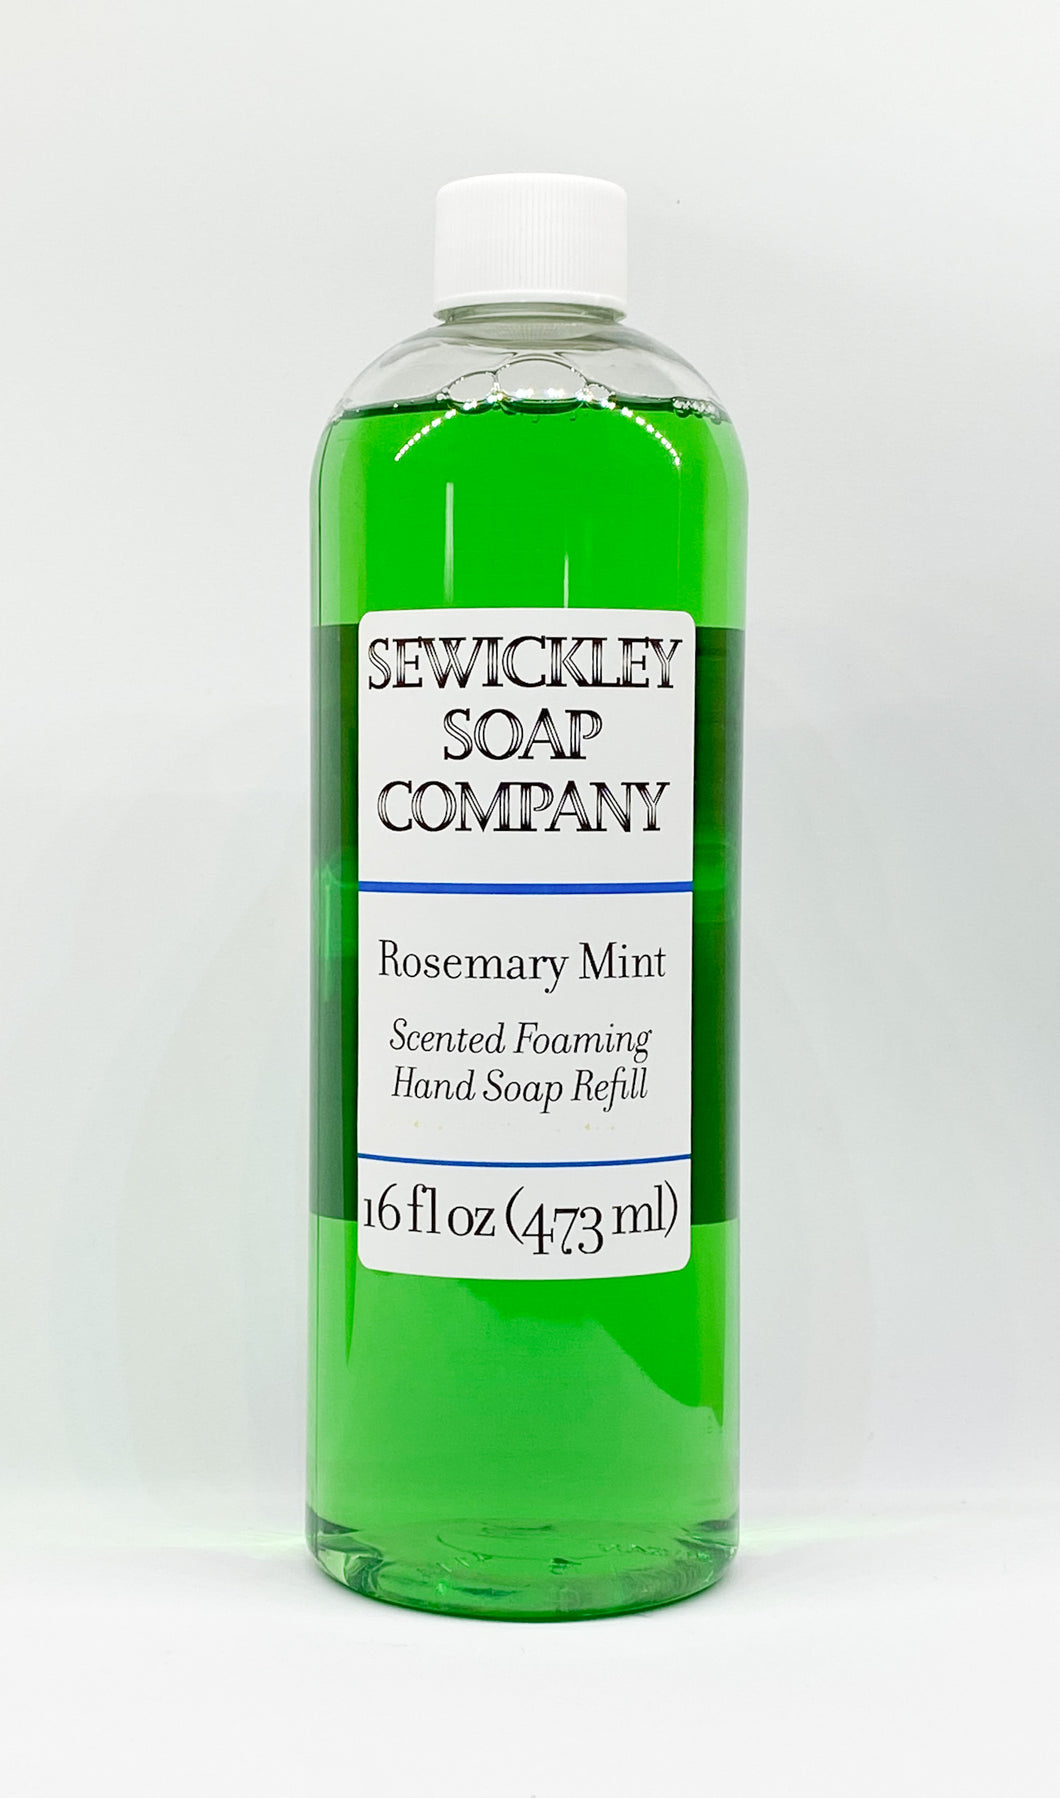 Rosemary Mint Scented Foaming Hand Soap - 16oz Refill